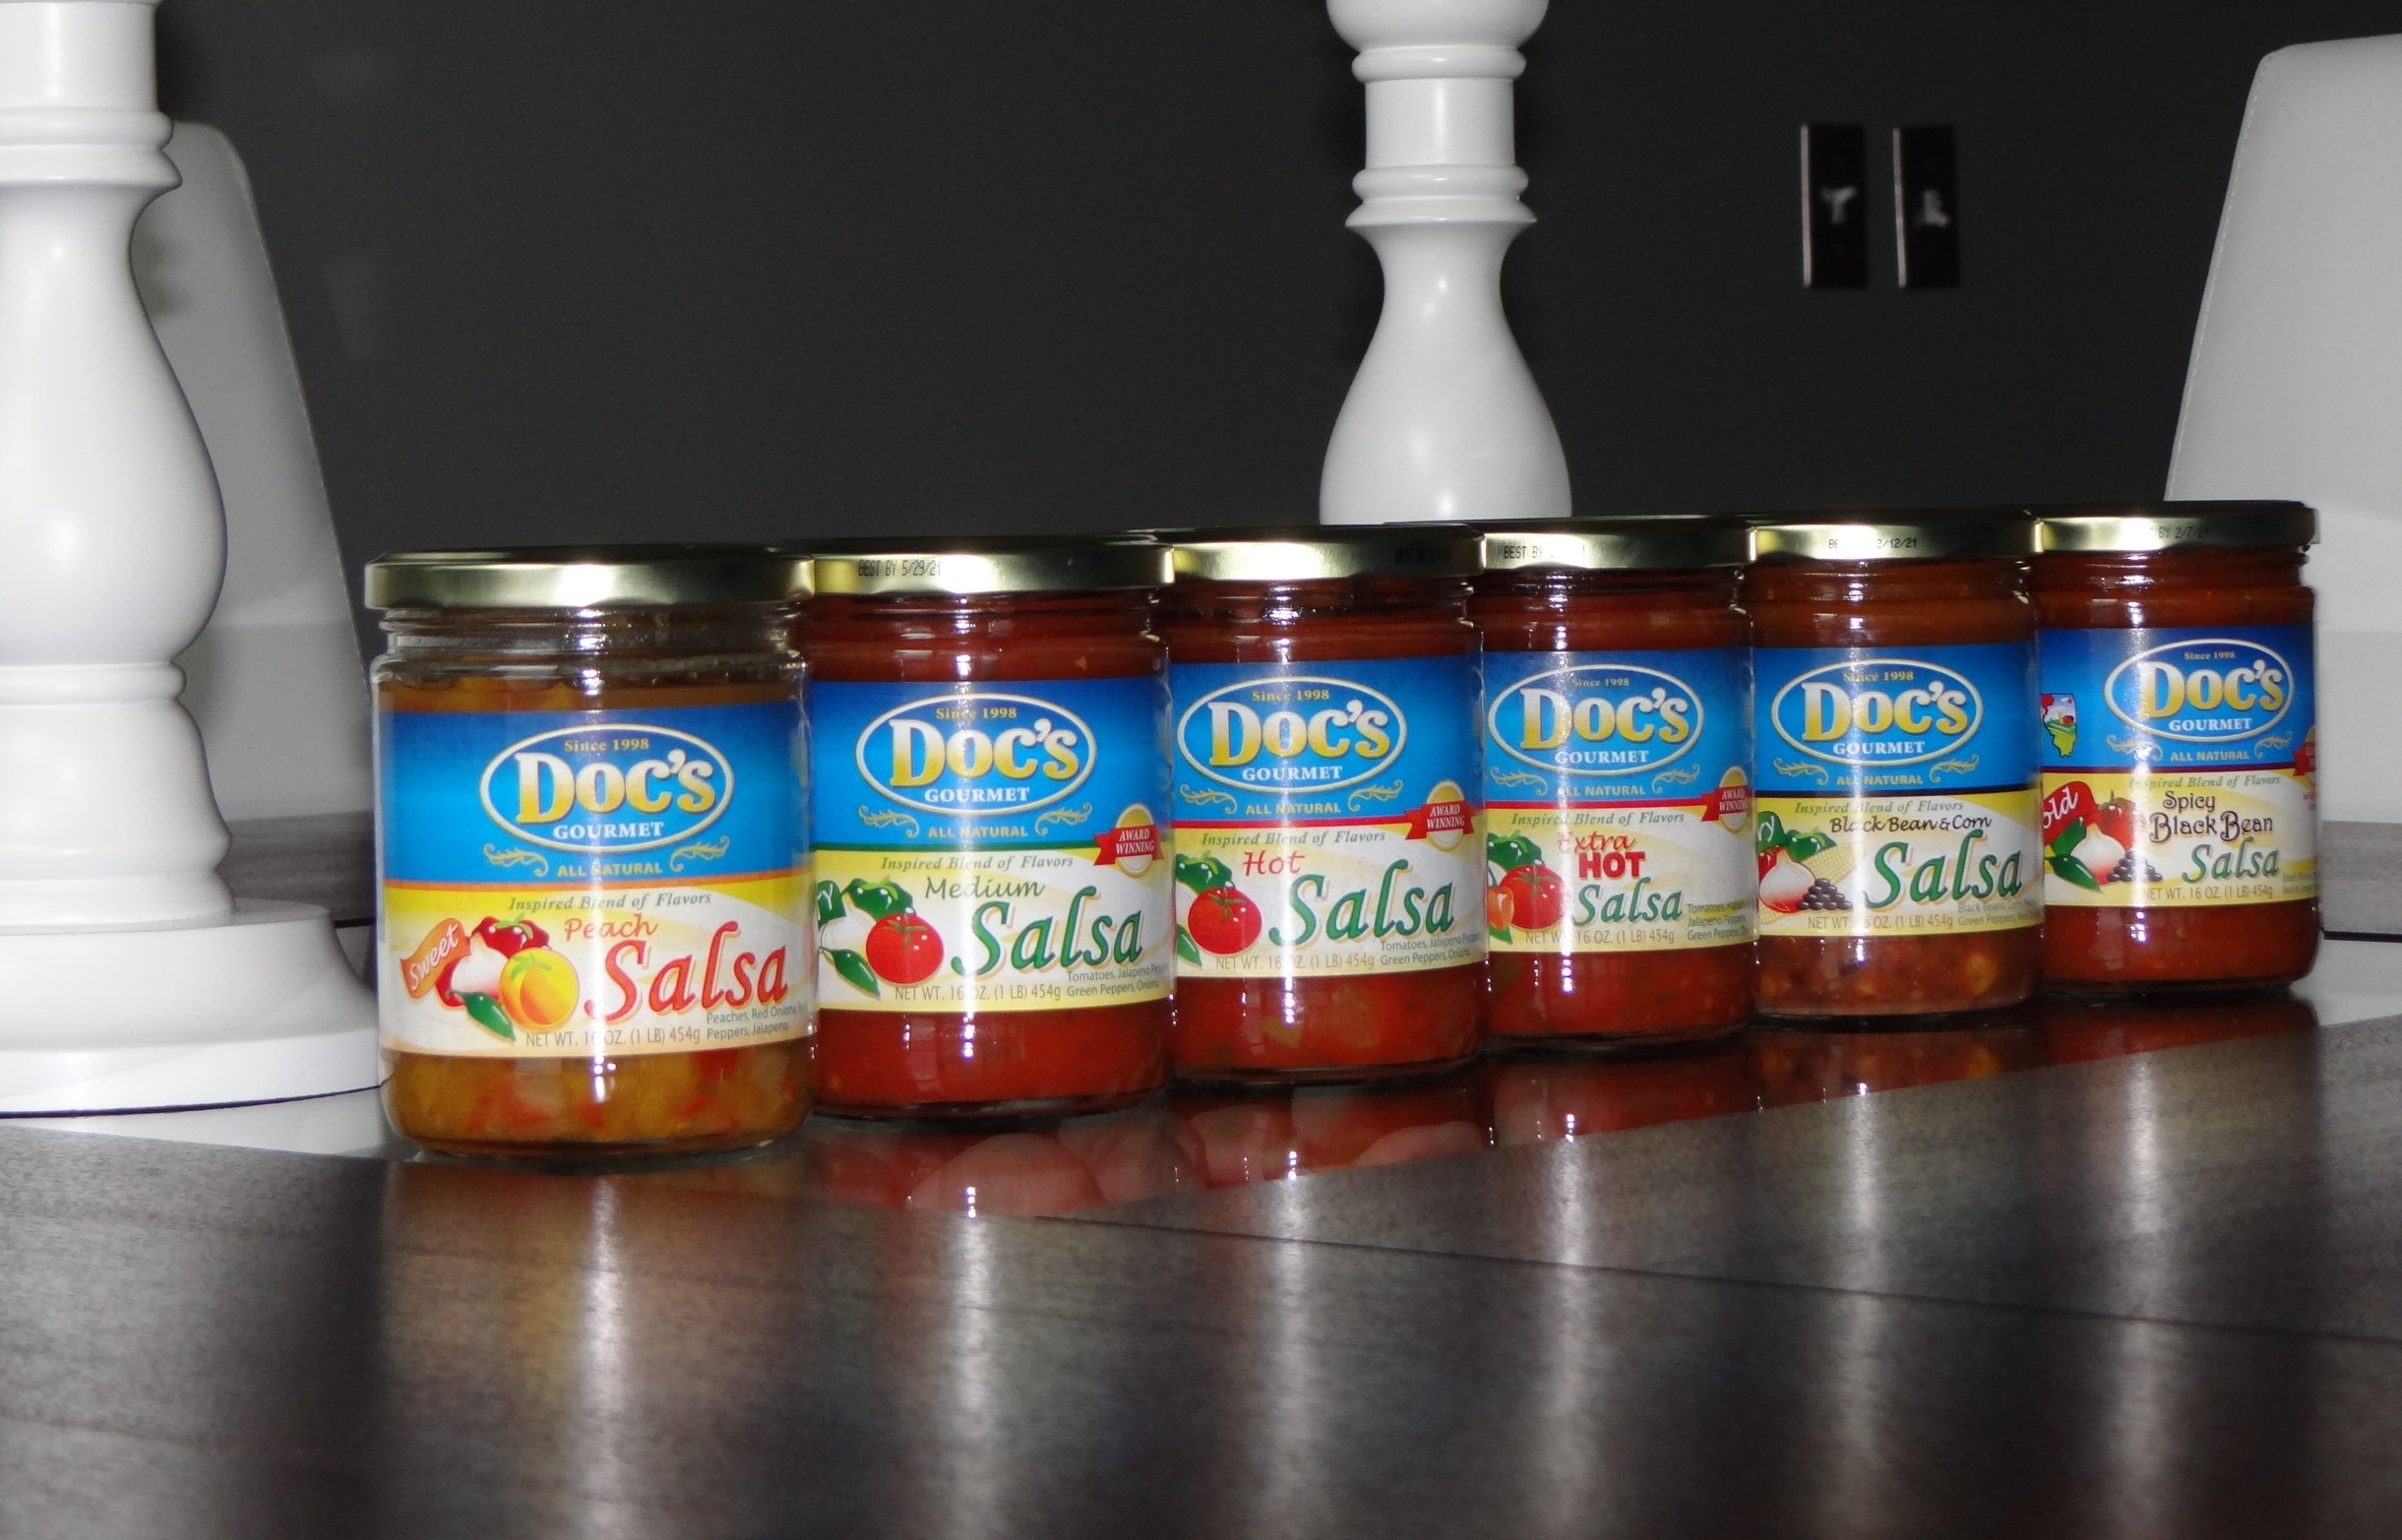 Welcome To Our Salsa Family - #AllNatural #GlutenFree #NoHighFructoseCornSyrup